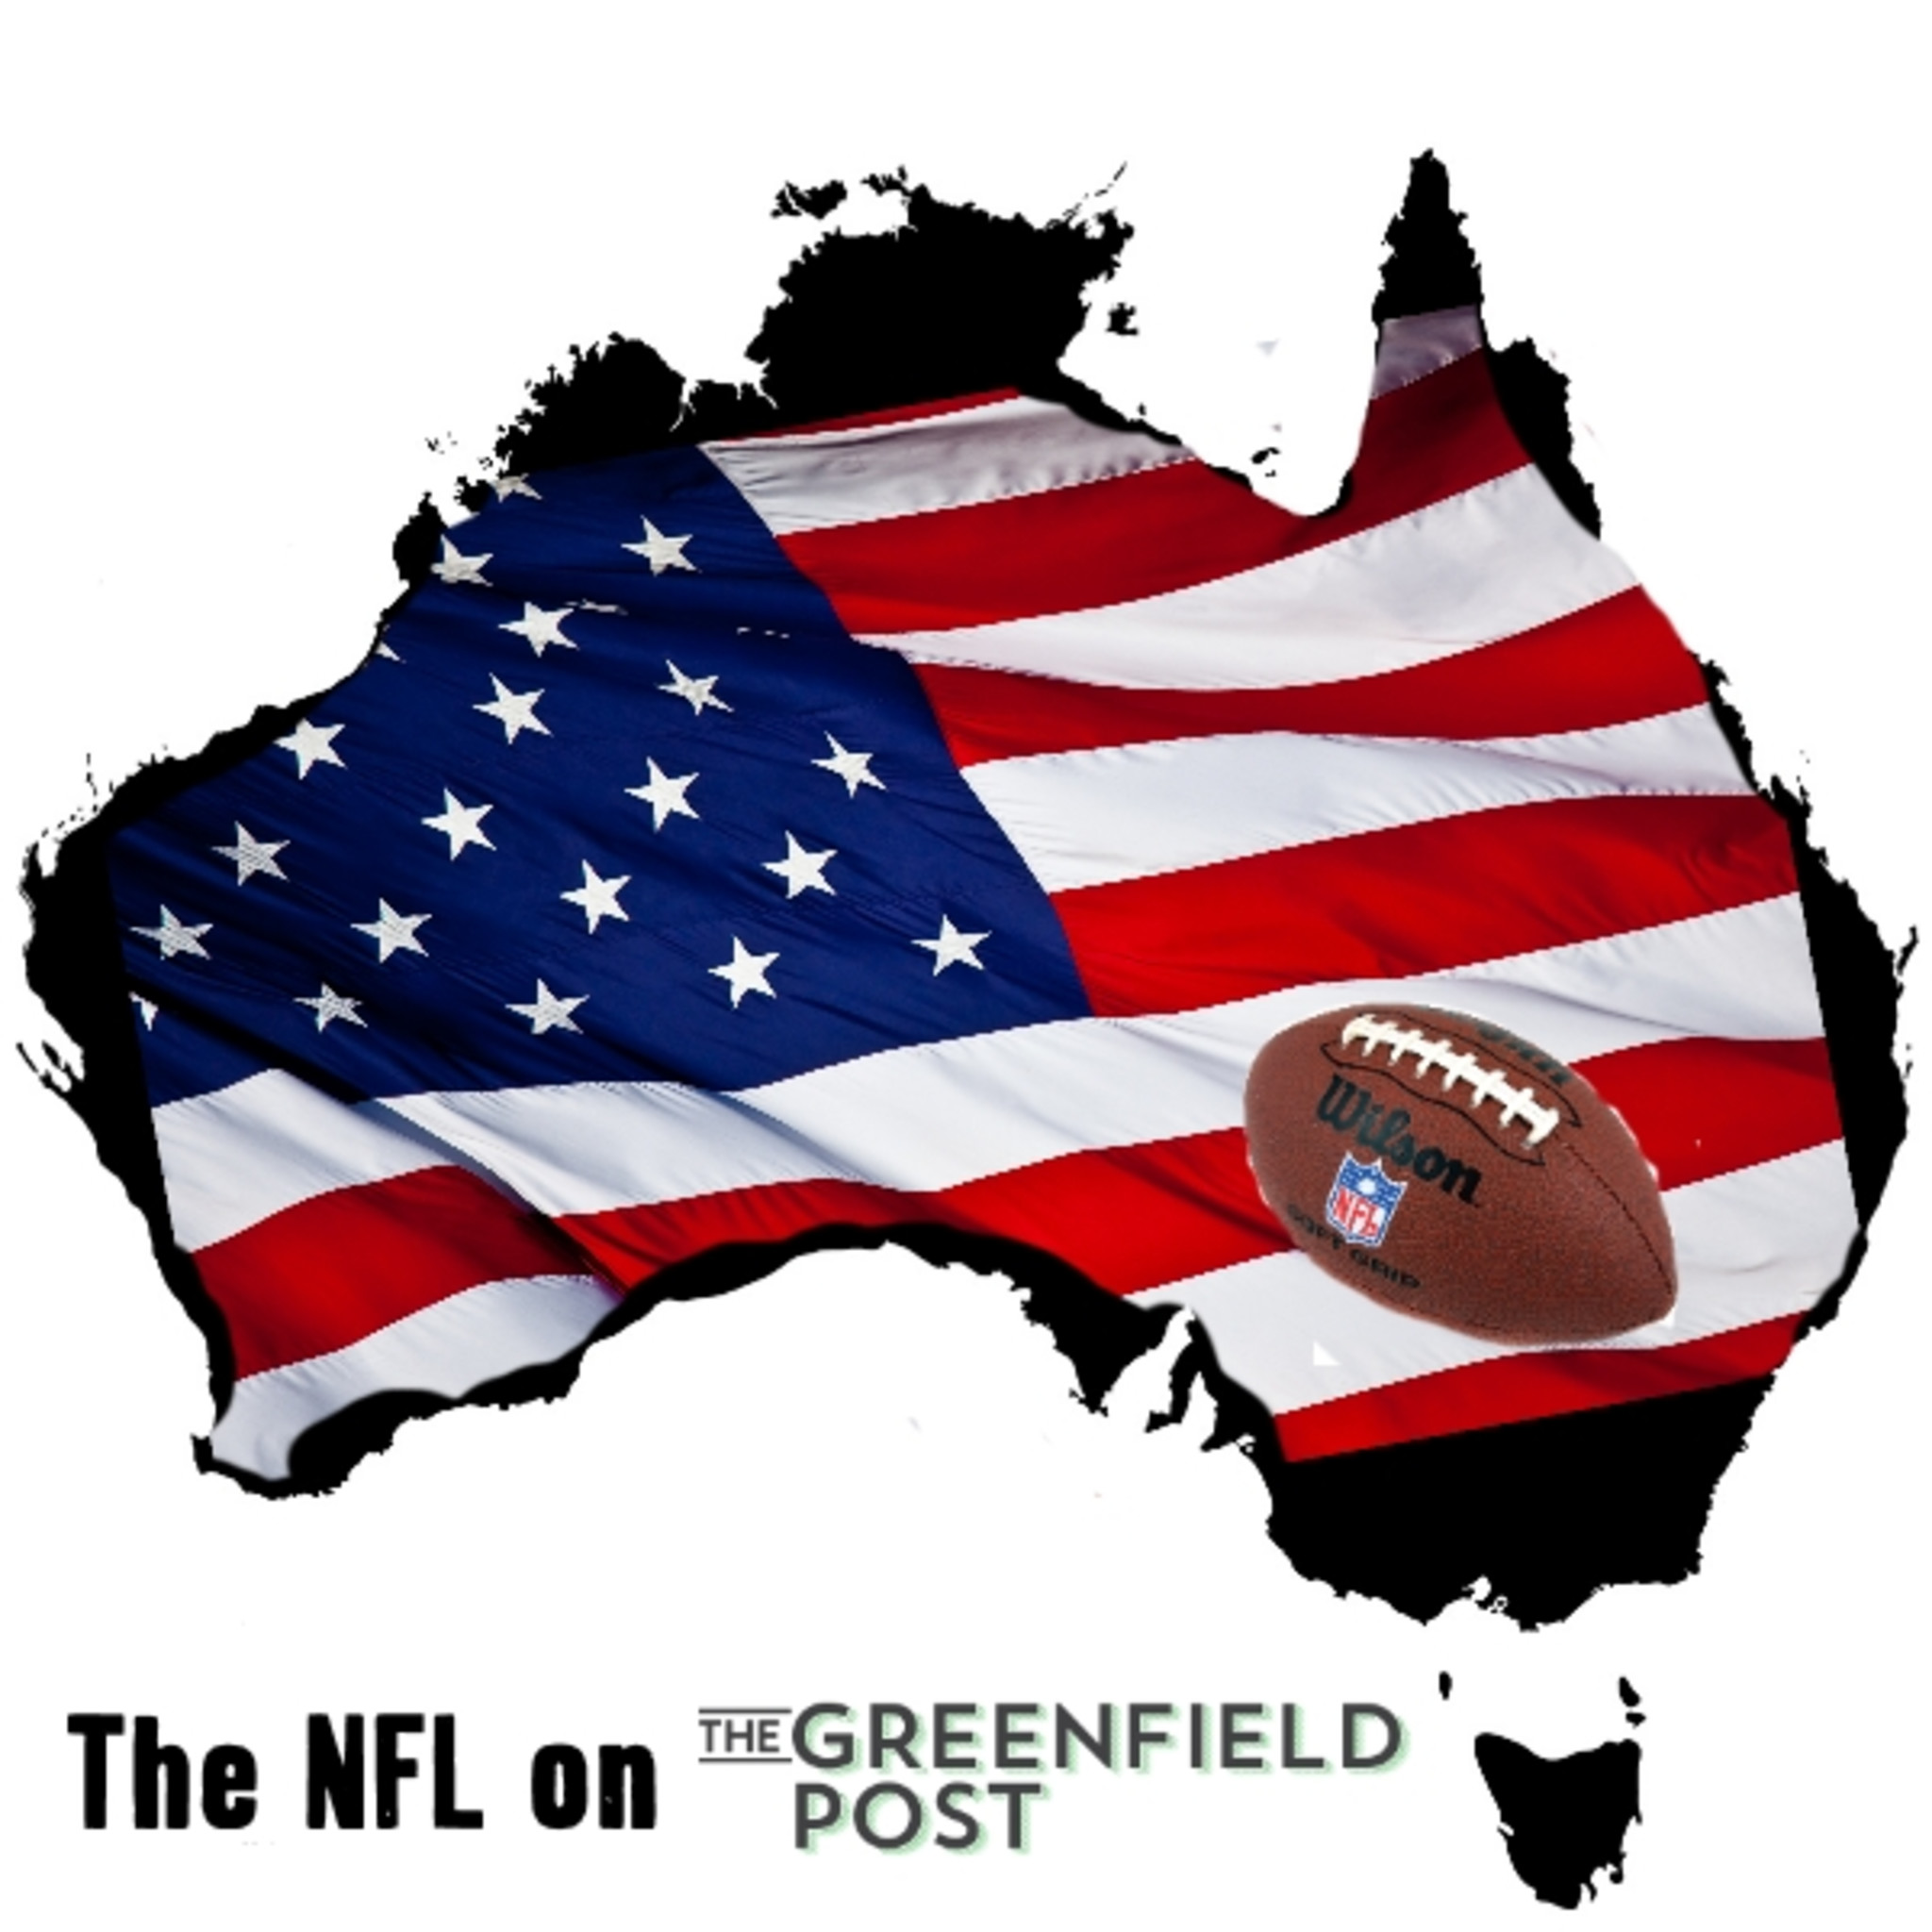 The NFL on The Greenfield Post